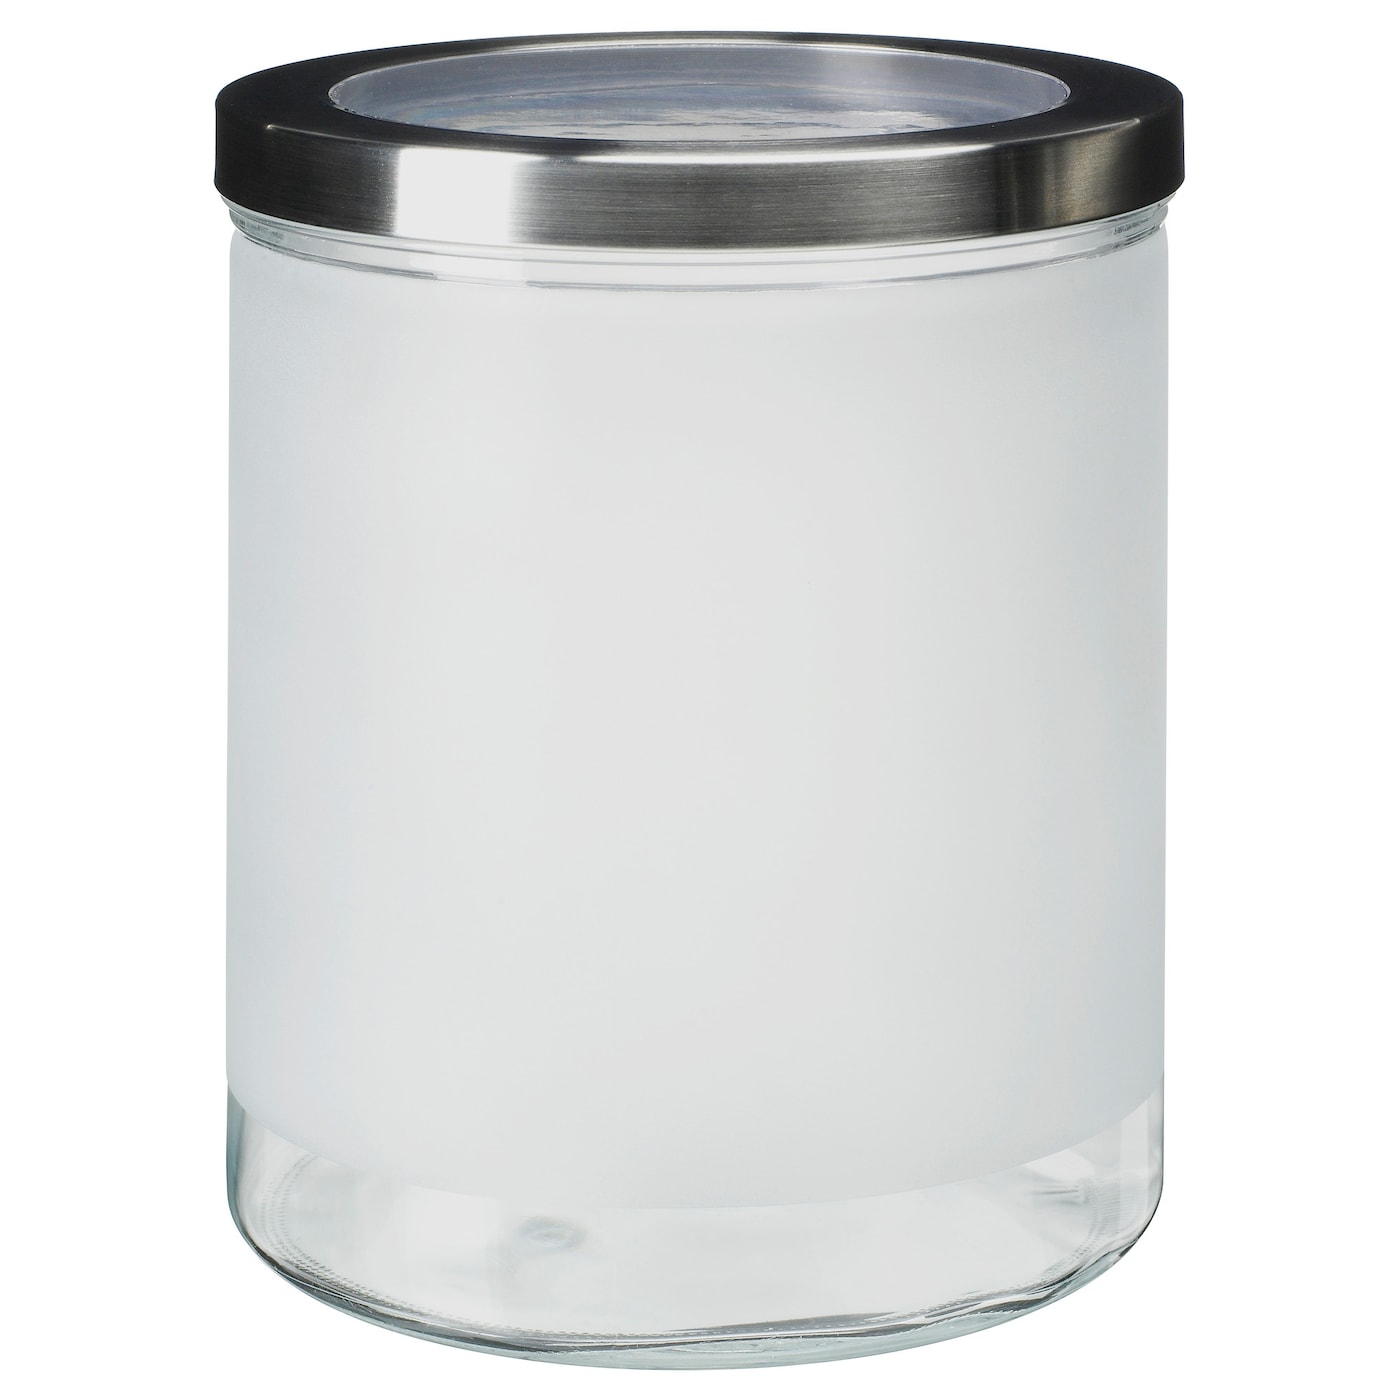 droppar jar with lid frosted glass stainless steel 3 5 l ikea. Black Bedroom Furniture Sets. Home Design Ideas